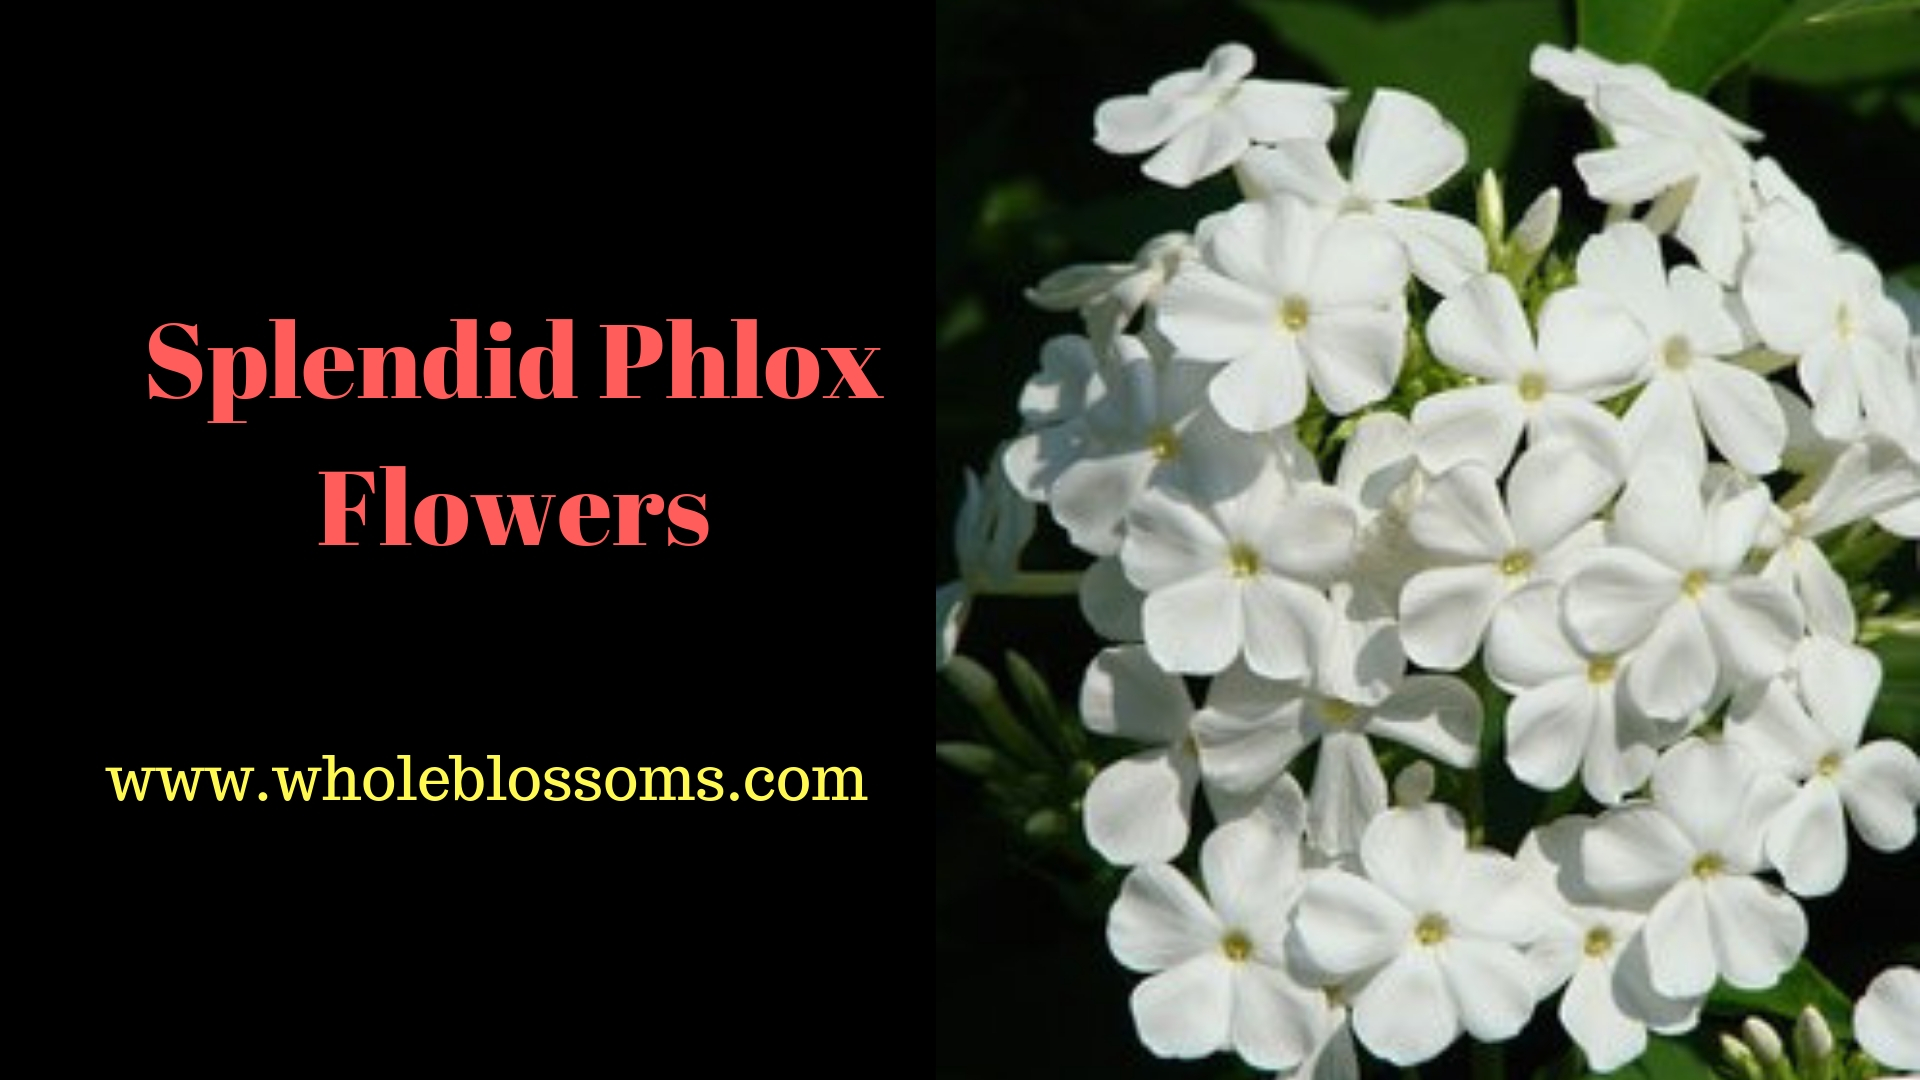 Buy Premium & High Quality of Fresh Cut Phlox